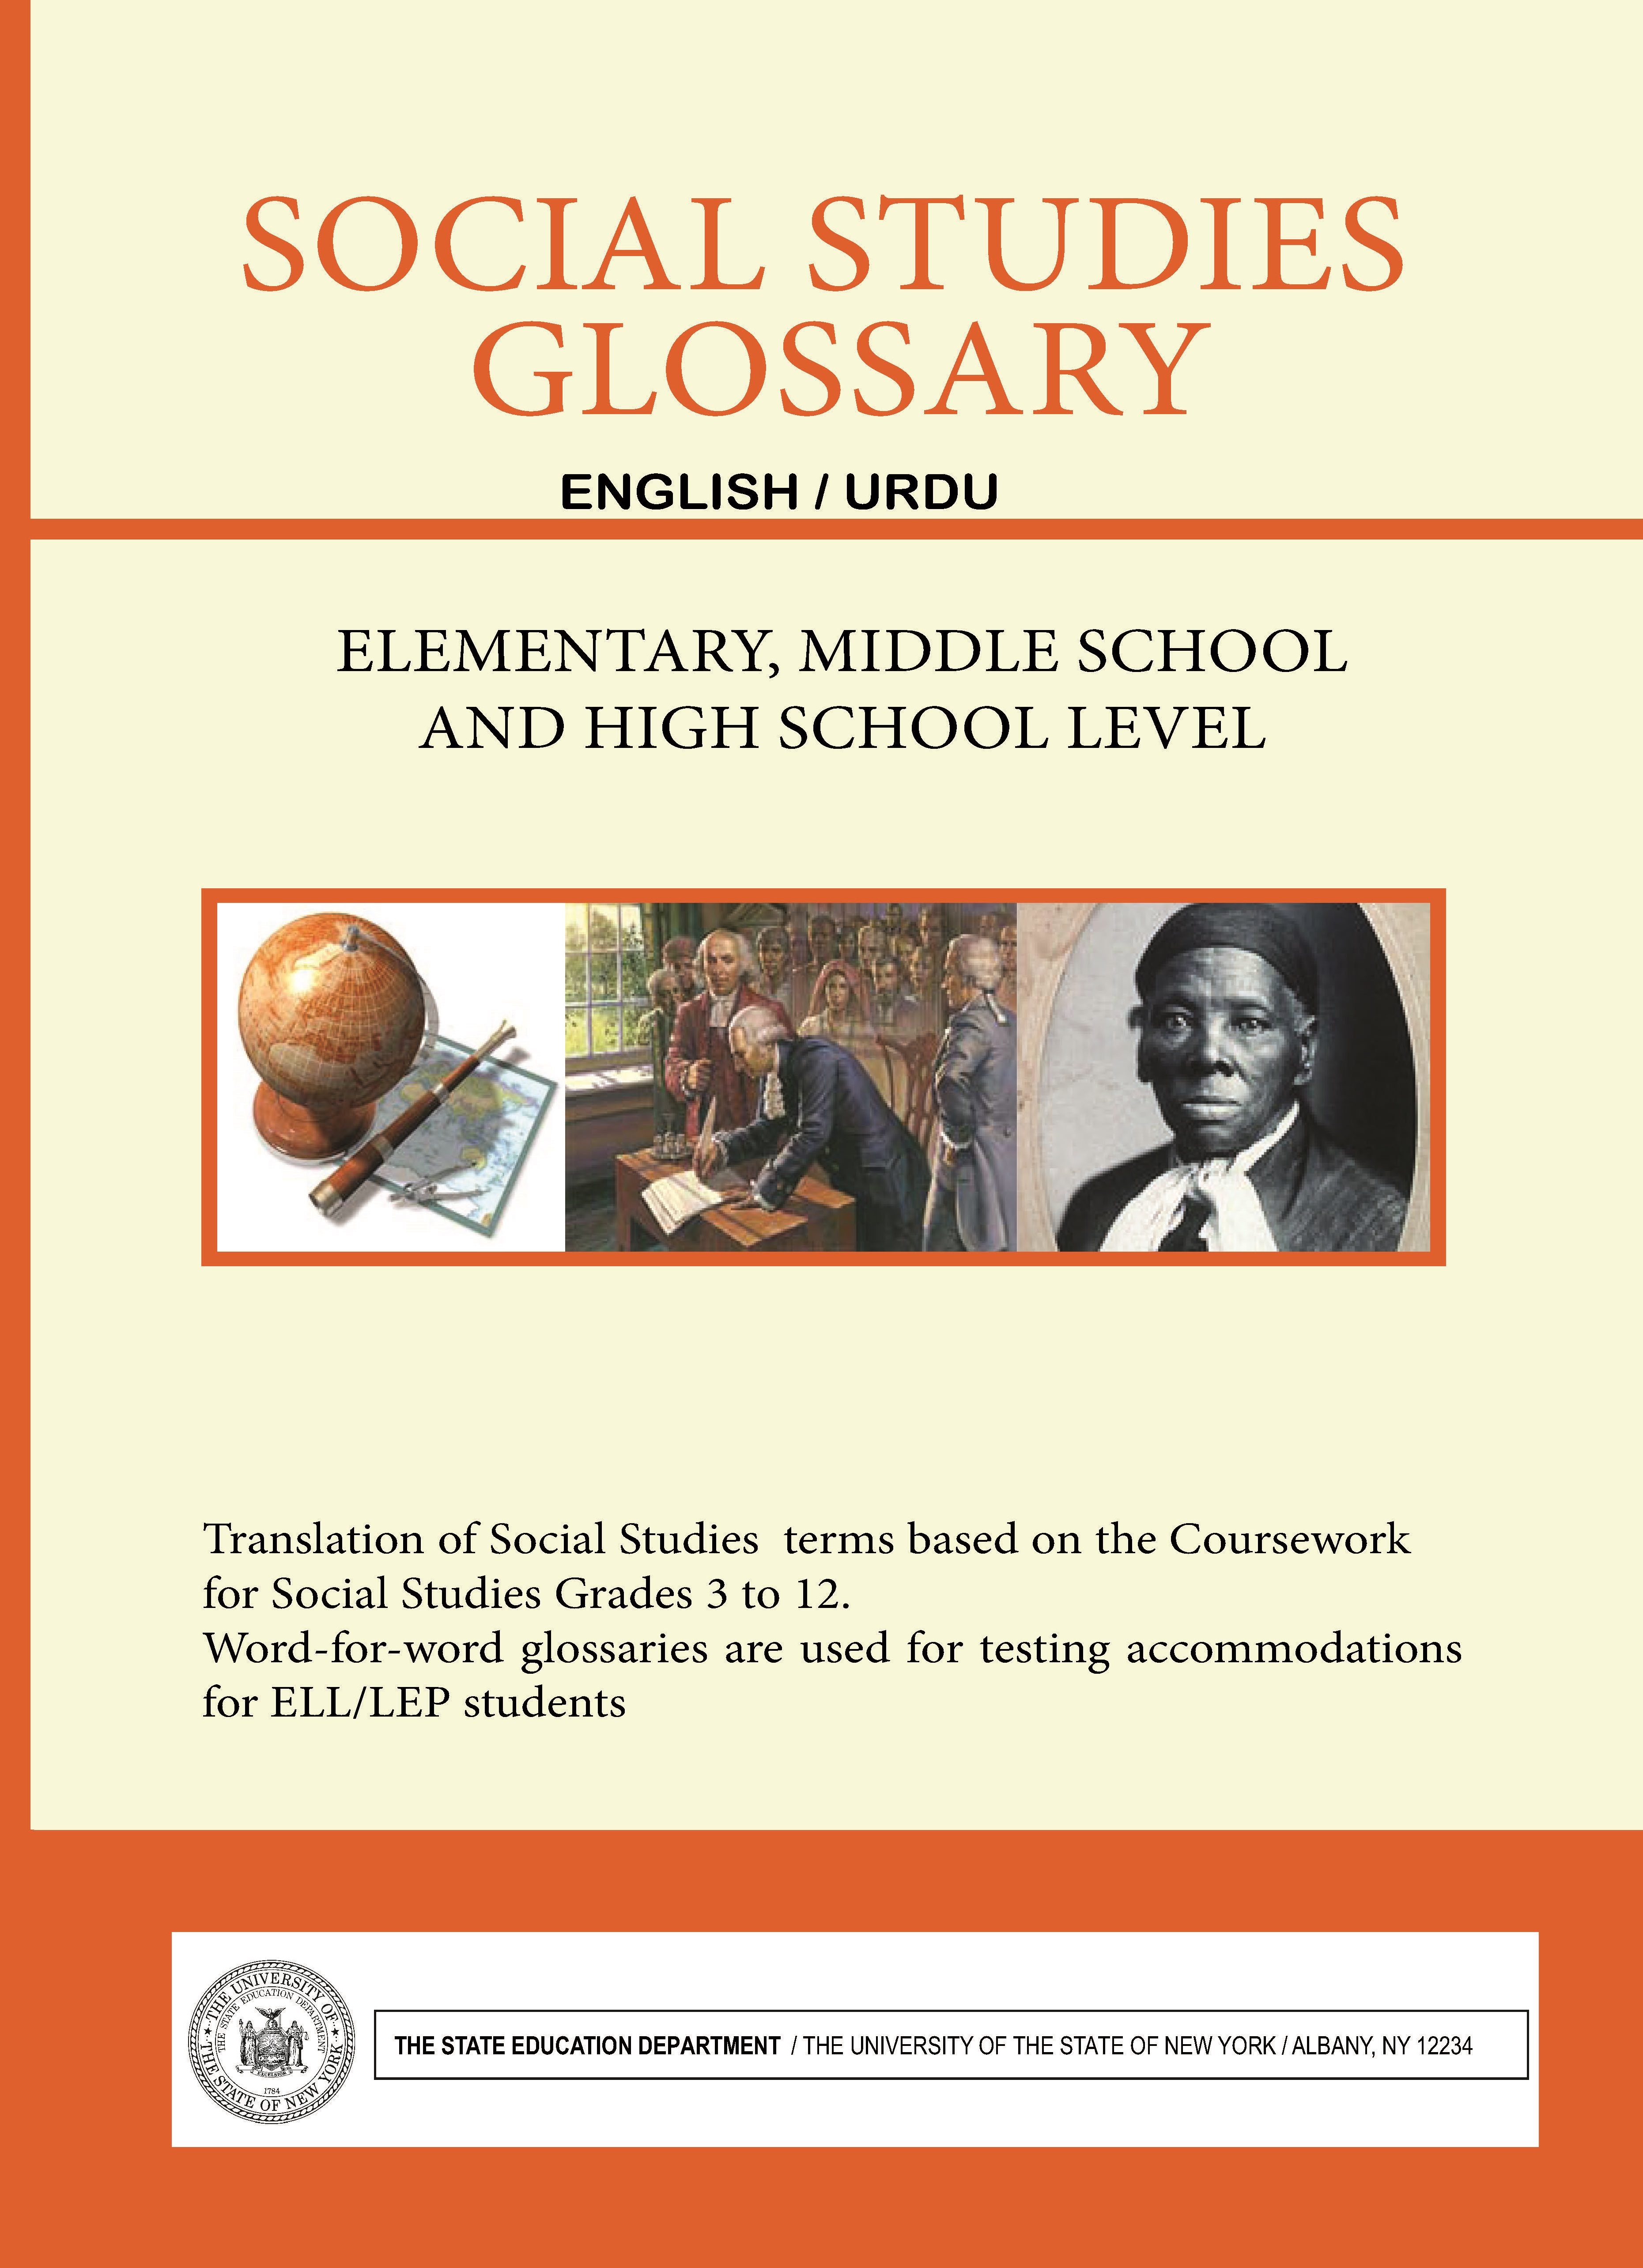 Social Studies Glossary  English/Urdu  Elementary, Middle School and High School Level